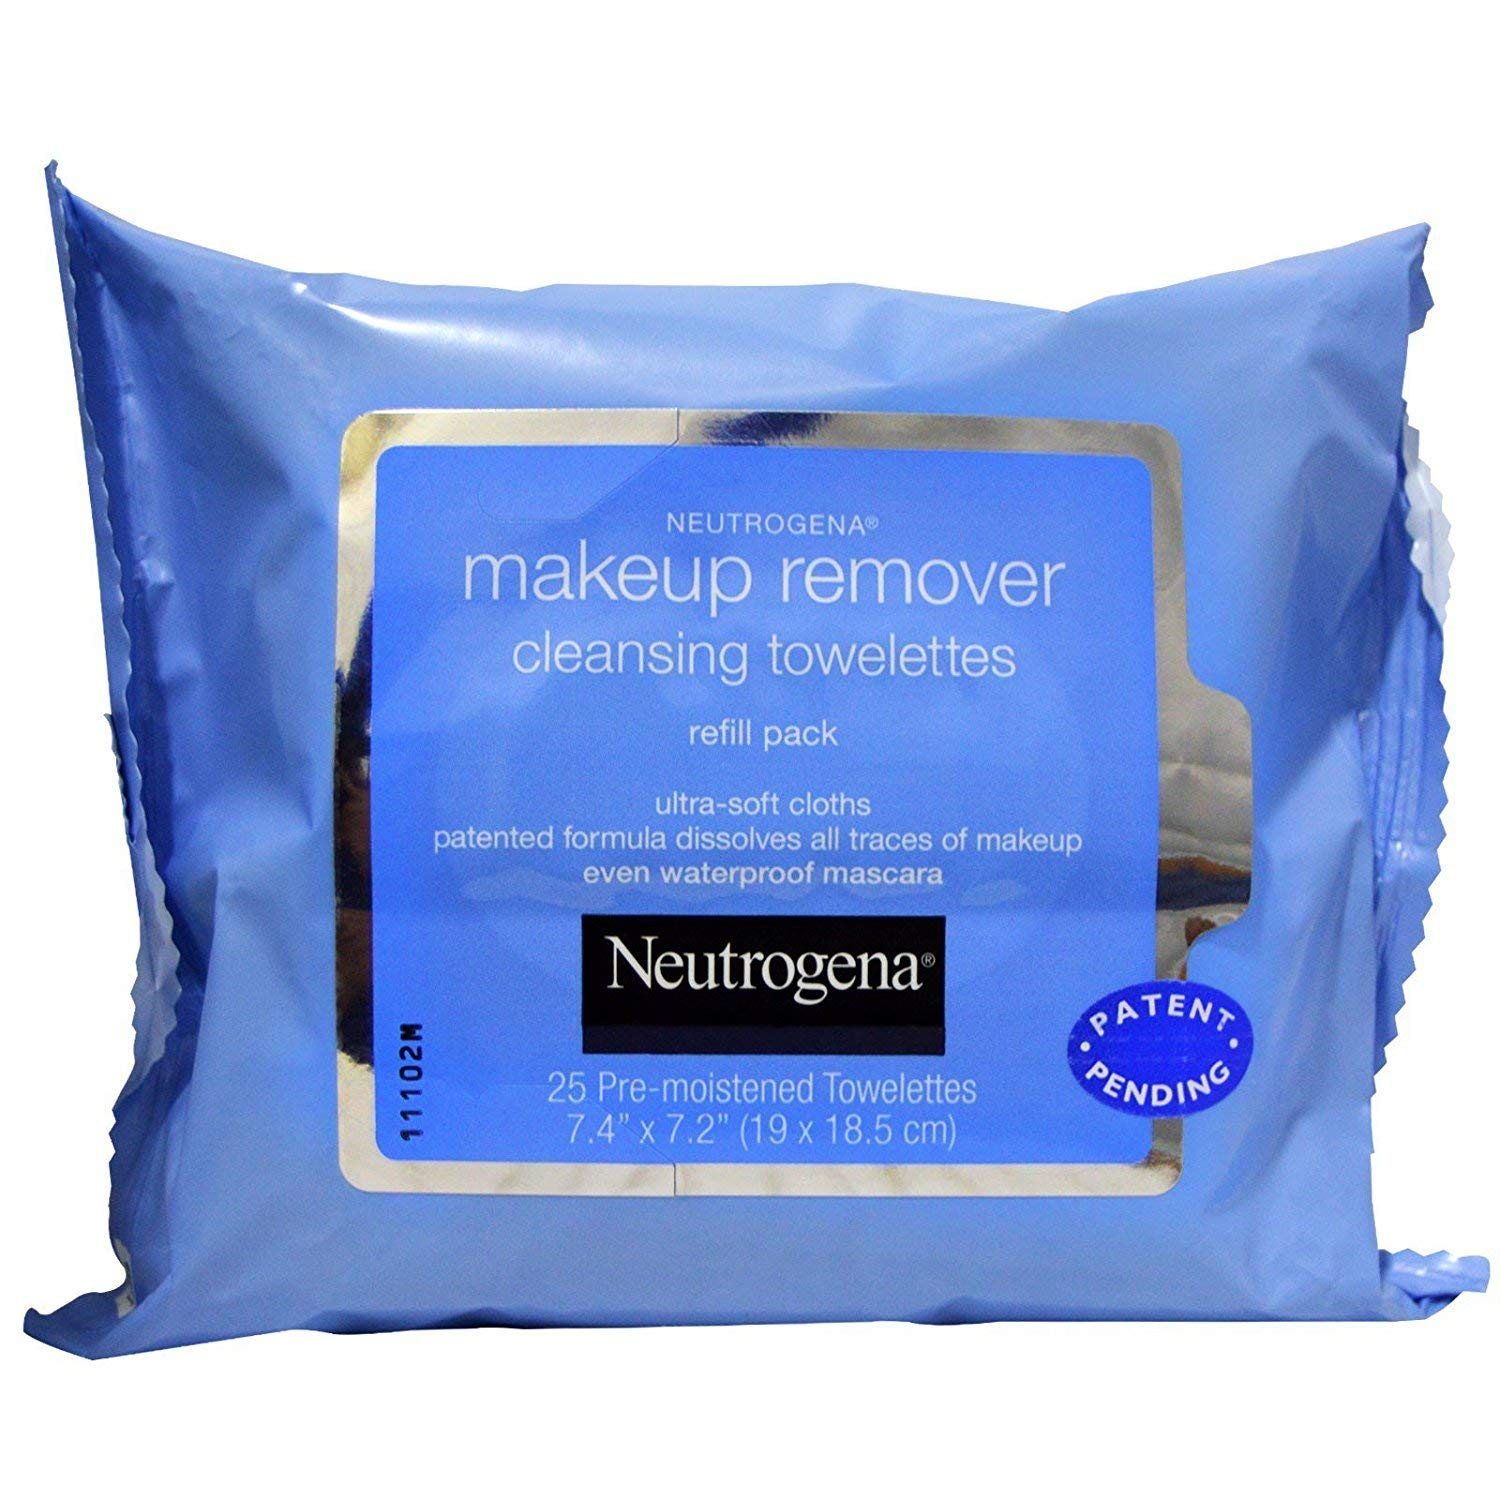 Neutrogena Makeup Remover Cleansing Towelettesの画像